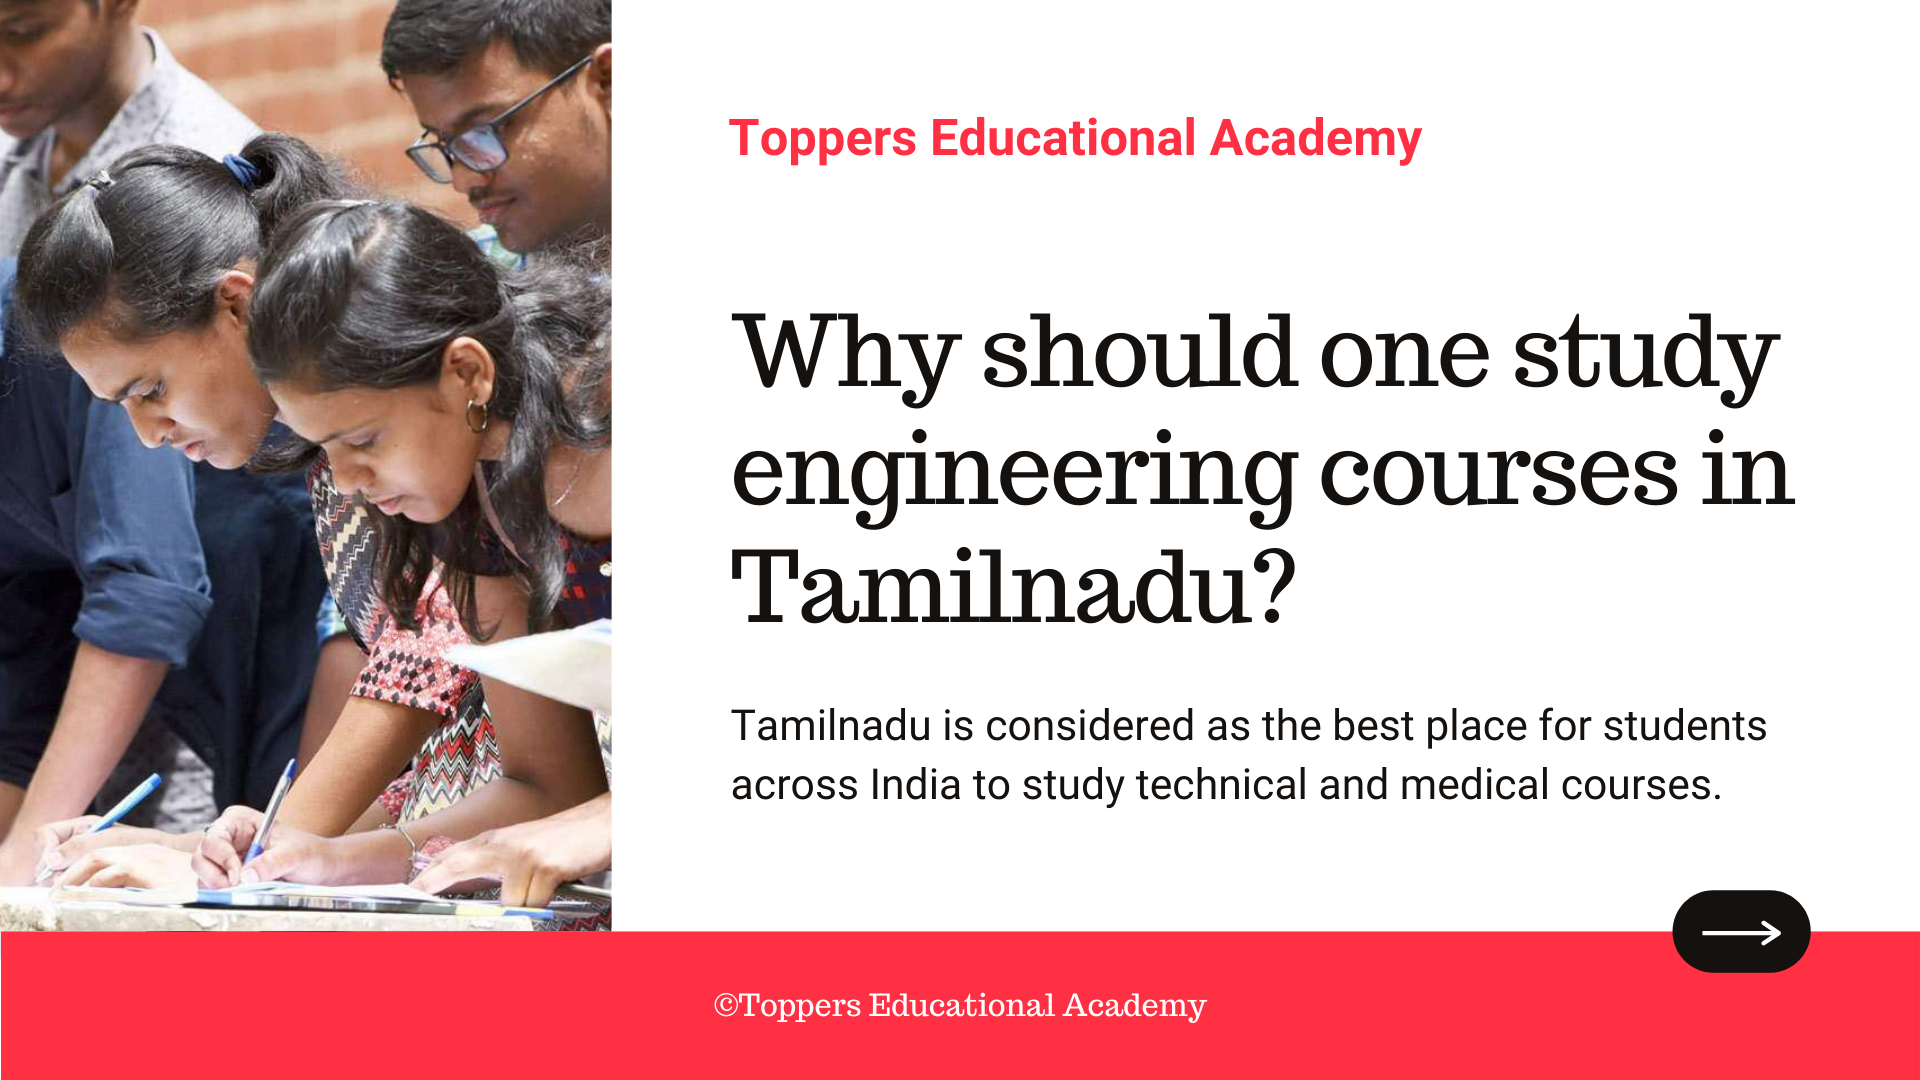 Why should one study engineering courses in Tamilnadu?